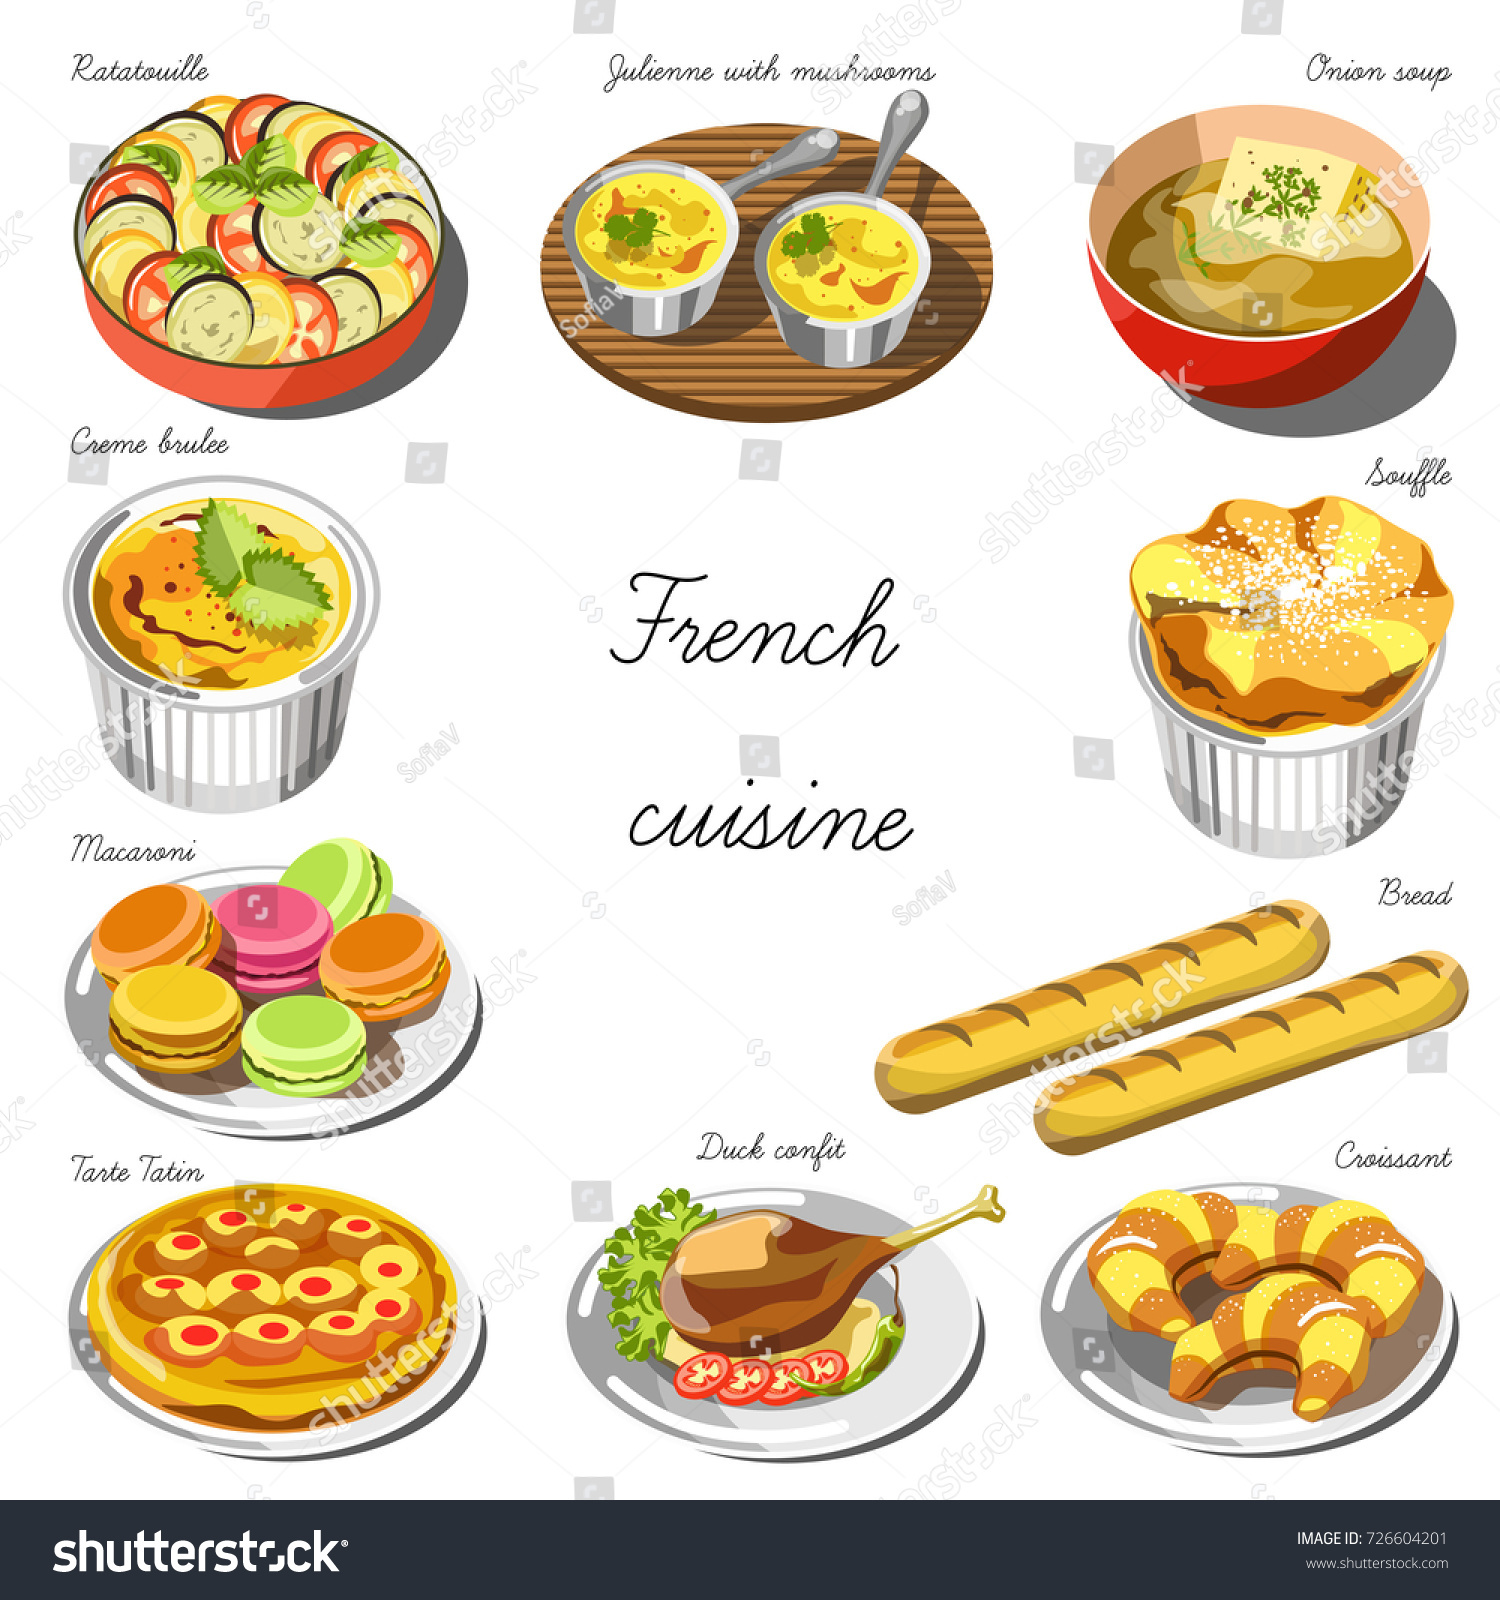 French cuisine icons restaurant menu template stock vector for Artistic cuisine menu